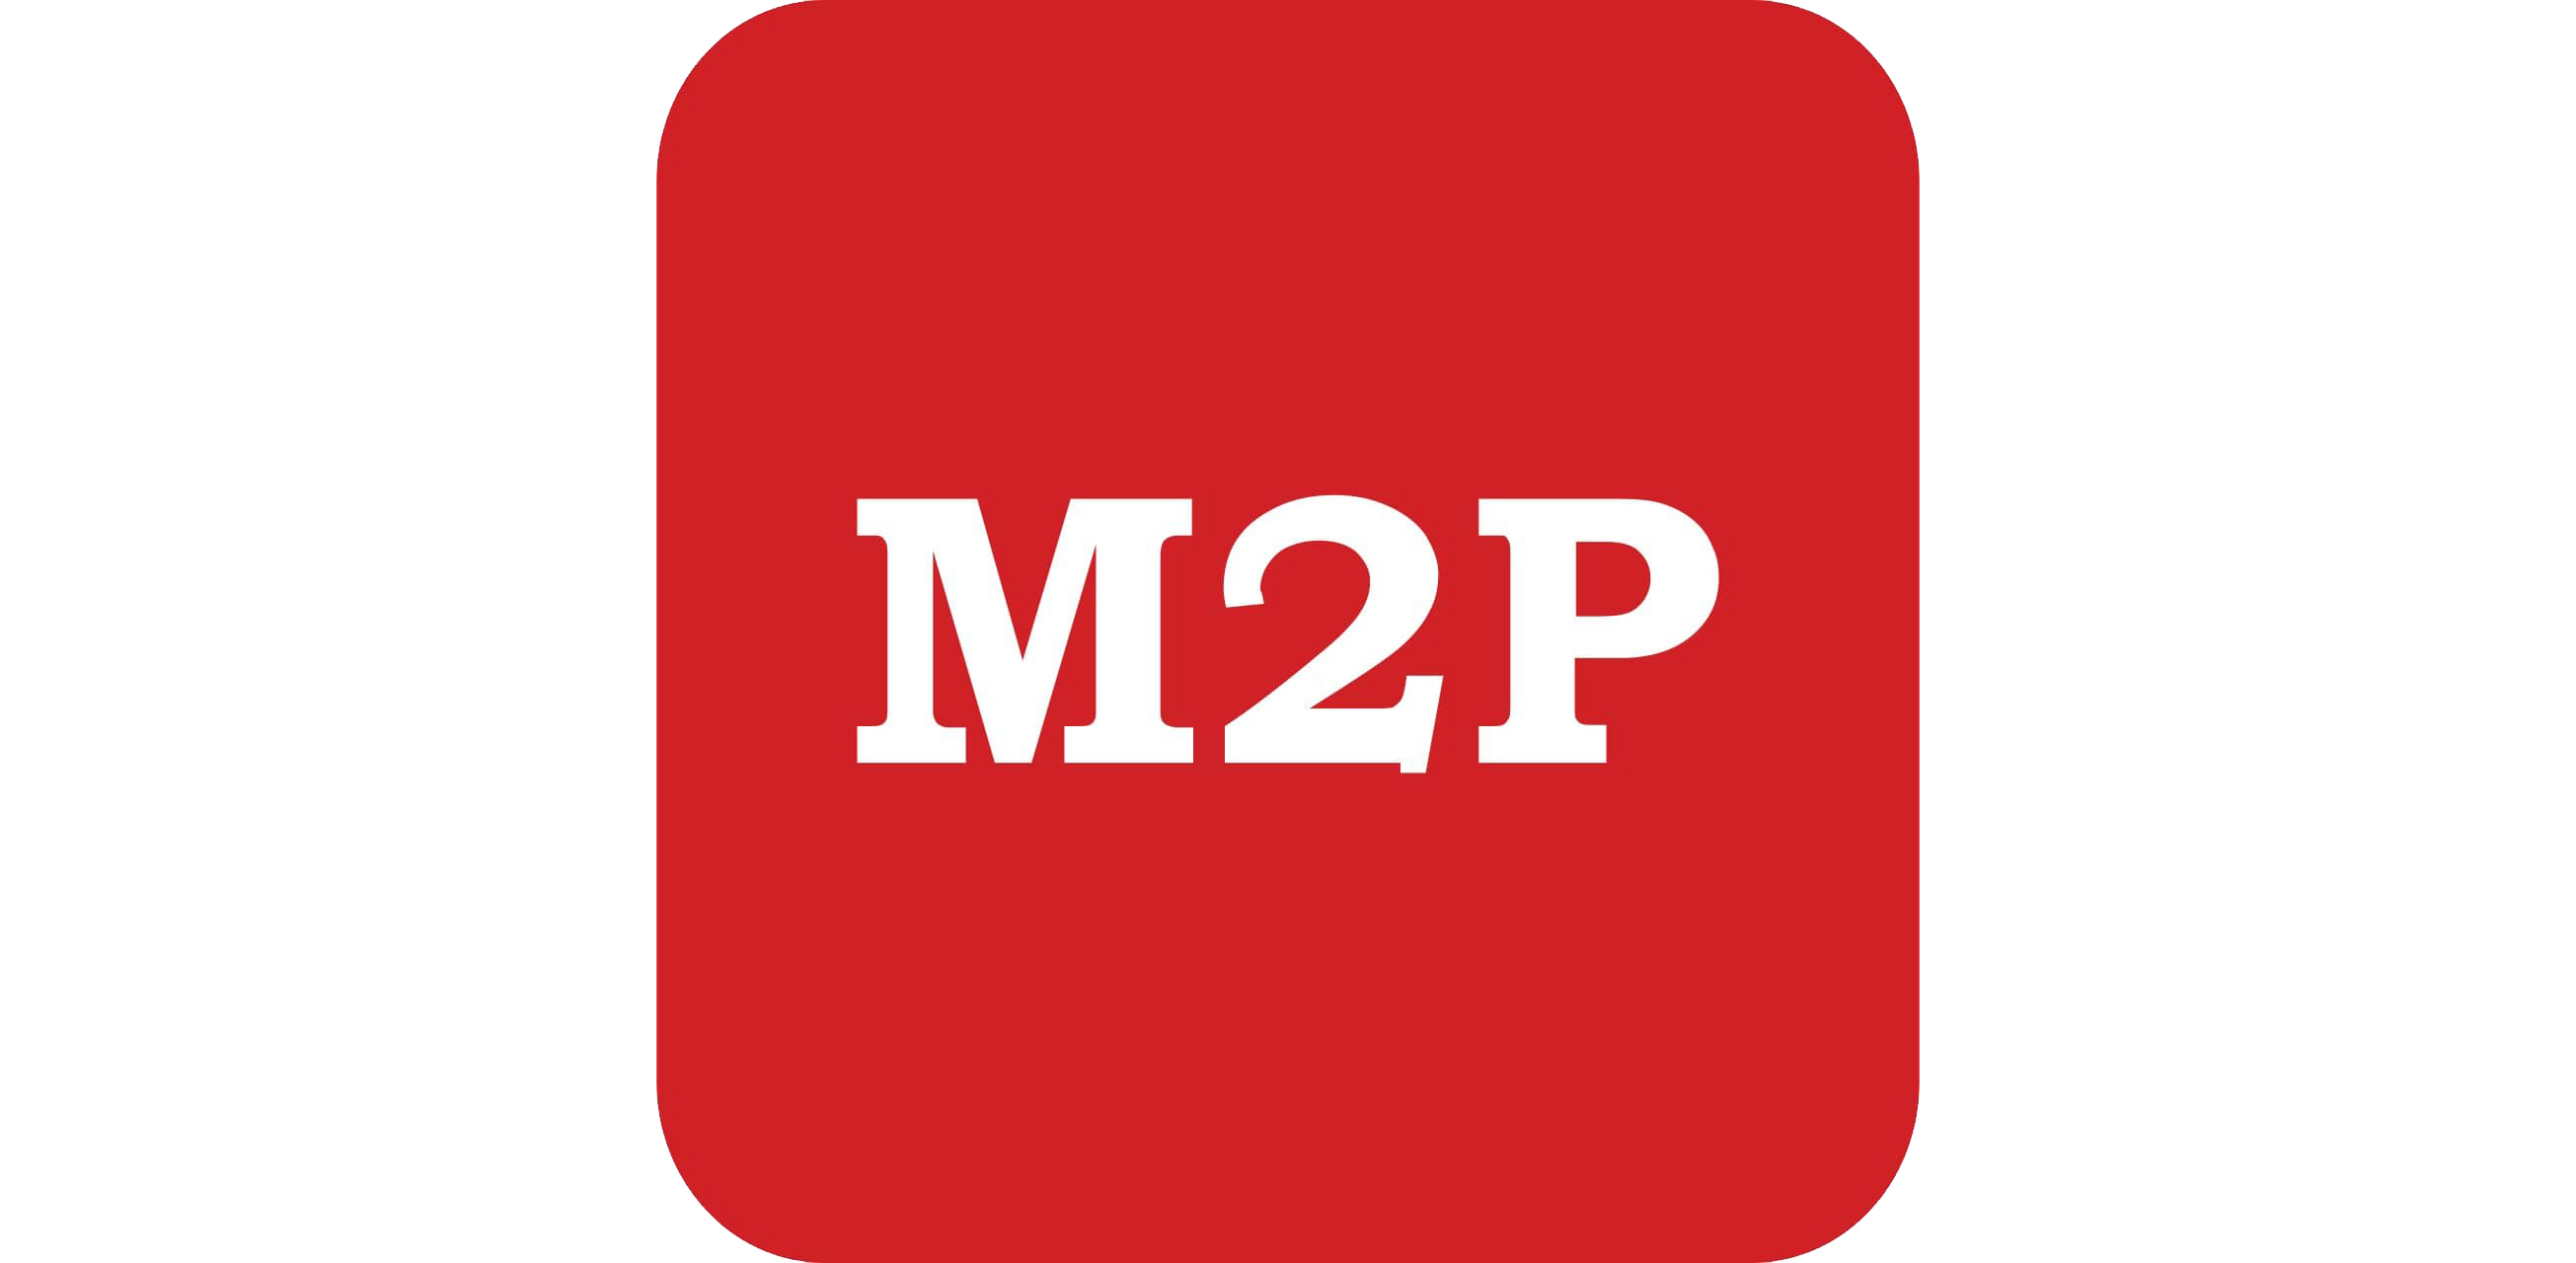 Indian Fintech Major M2P Solutions Expands into the Middle East with Abu Dhabi as Regional Headquarters